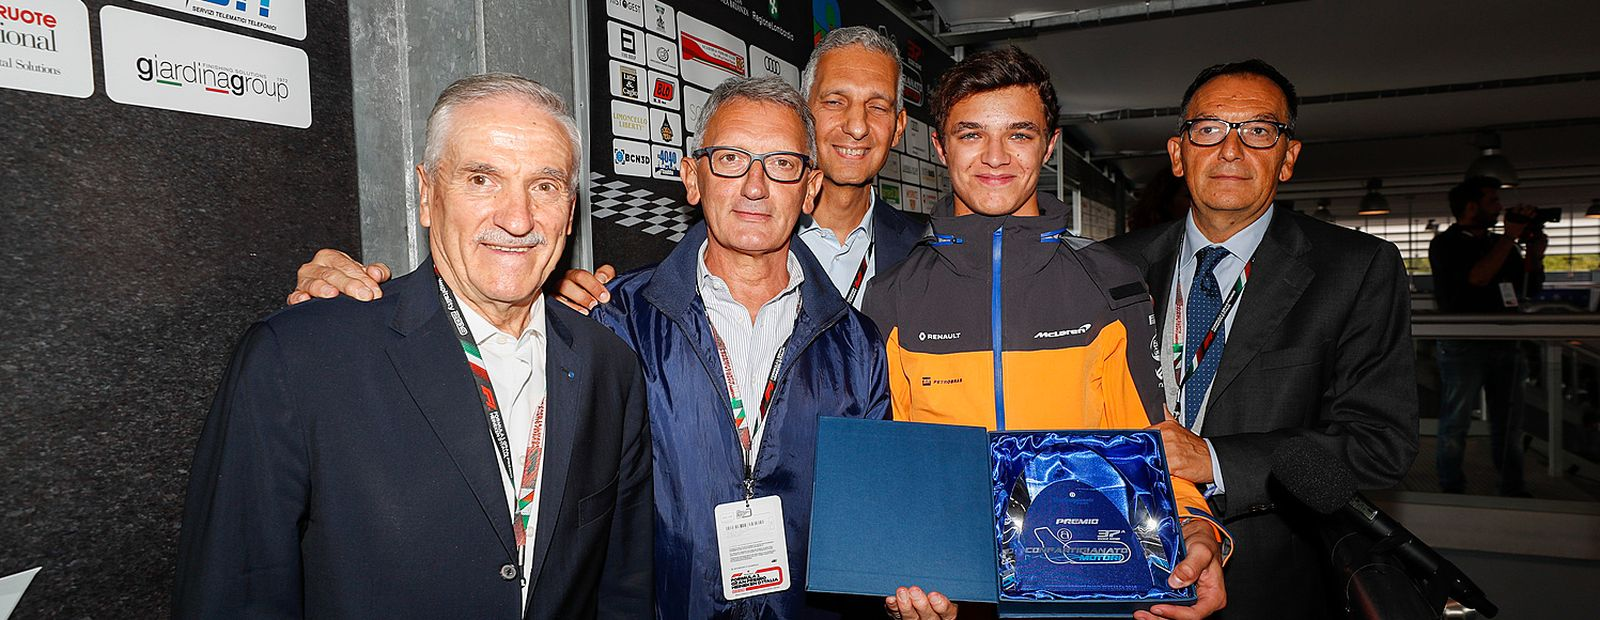 Lando named Rookie of the Year at the Confartigianato Motori Awards